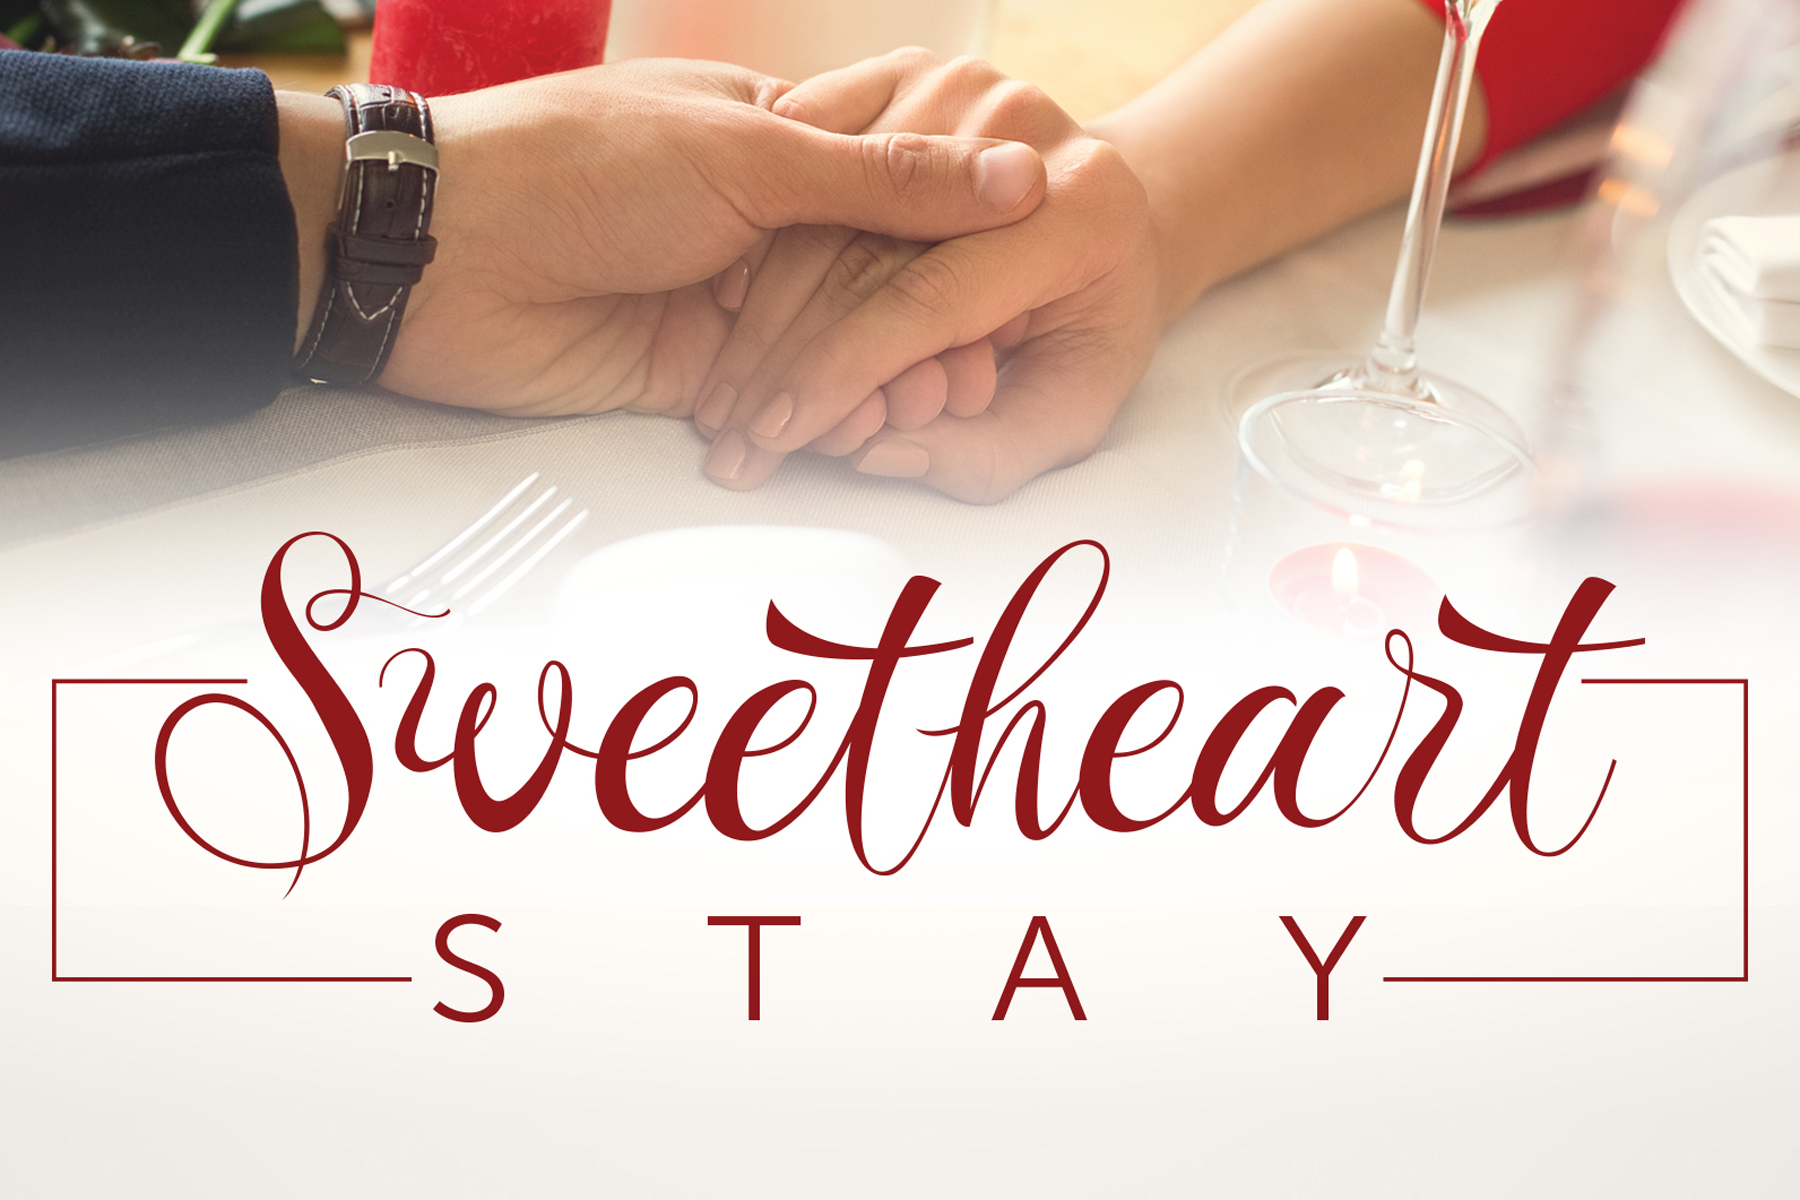 Sweetheart Stay